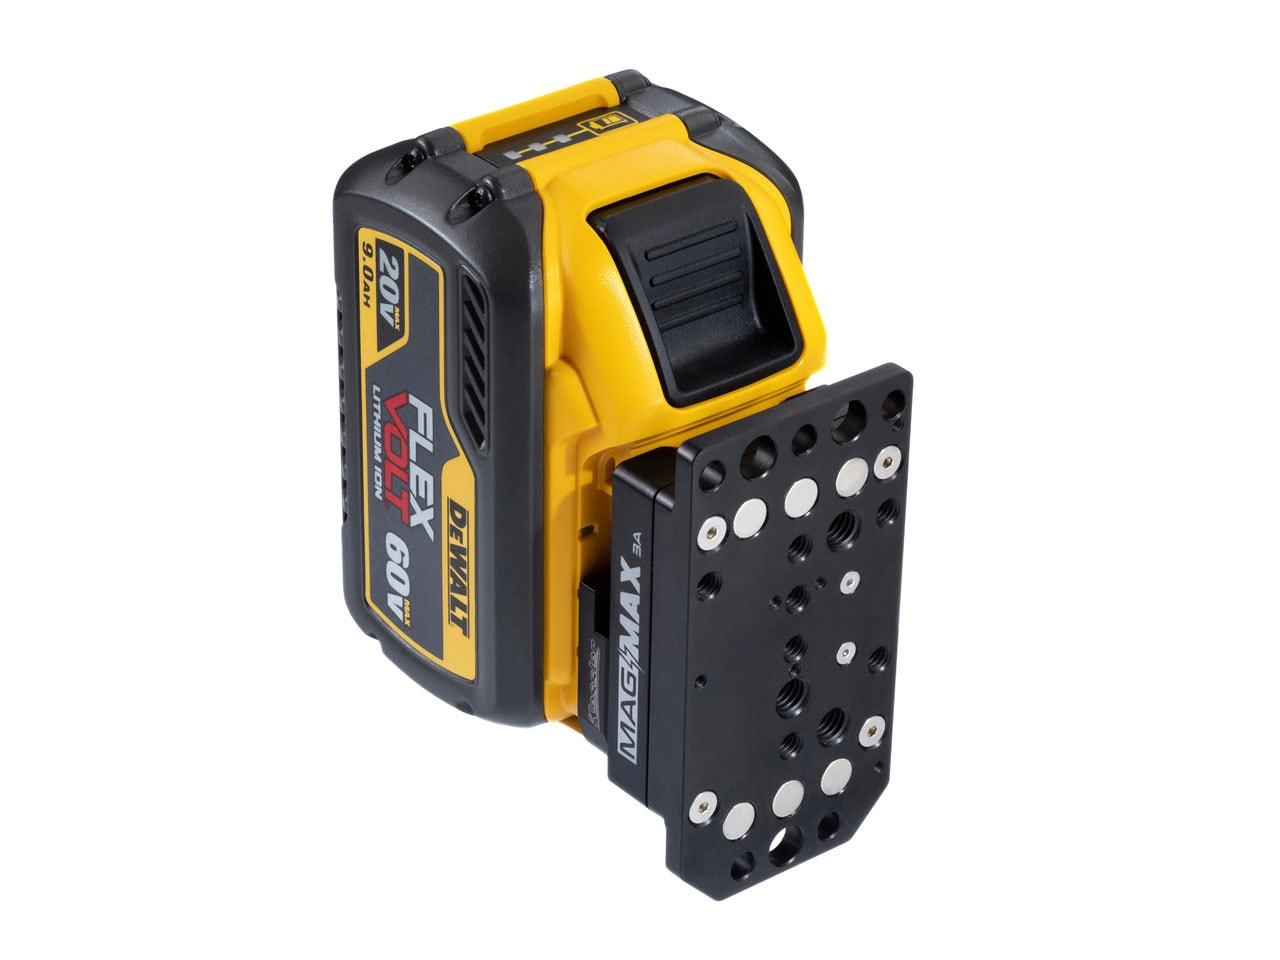 connects to a DeWalt battery